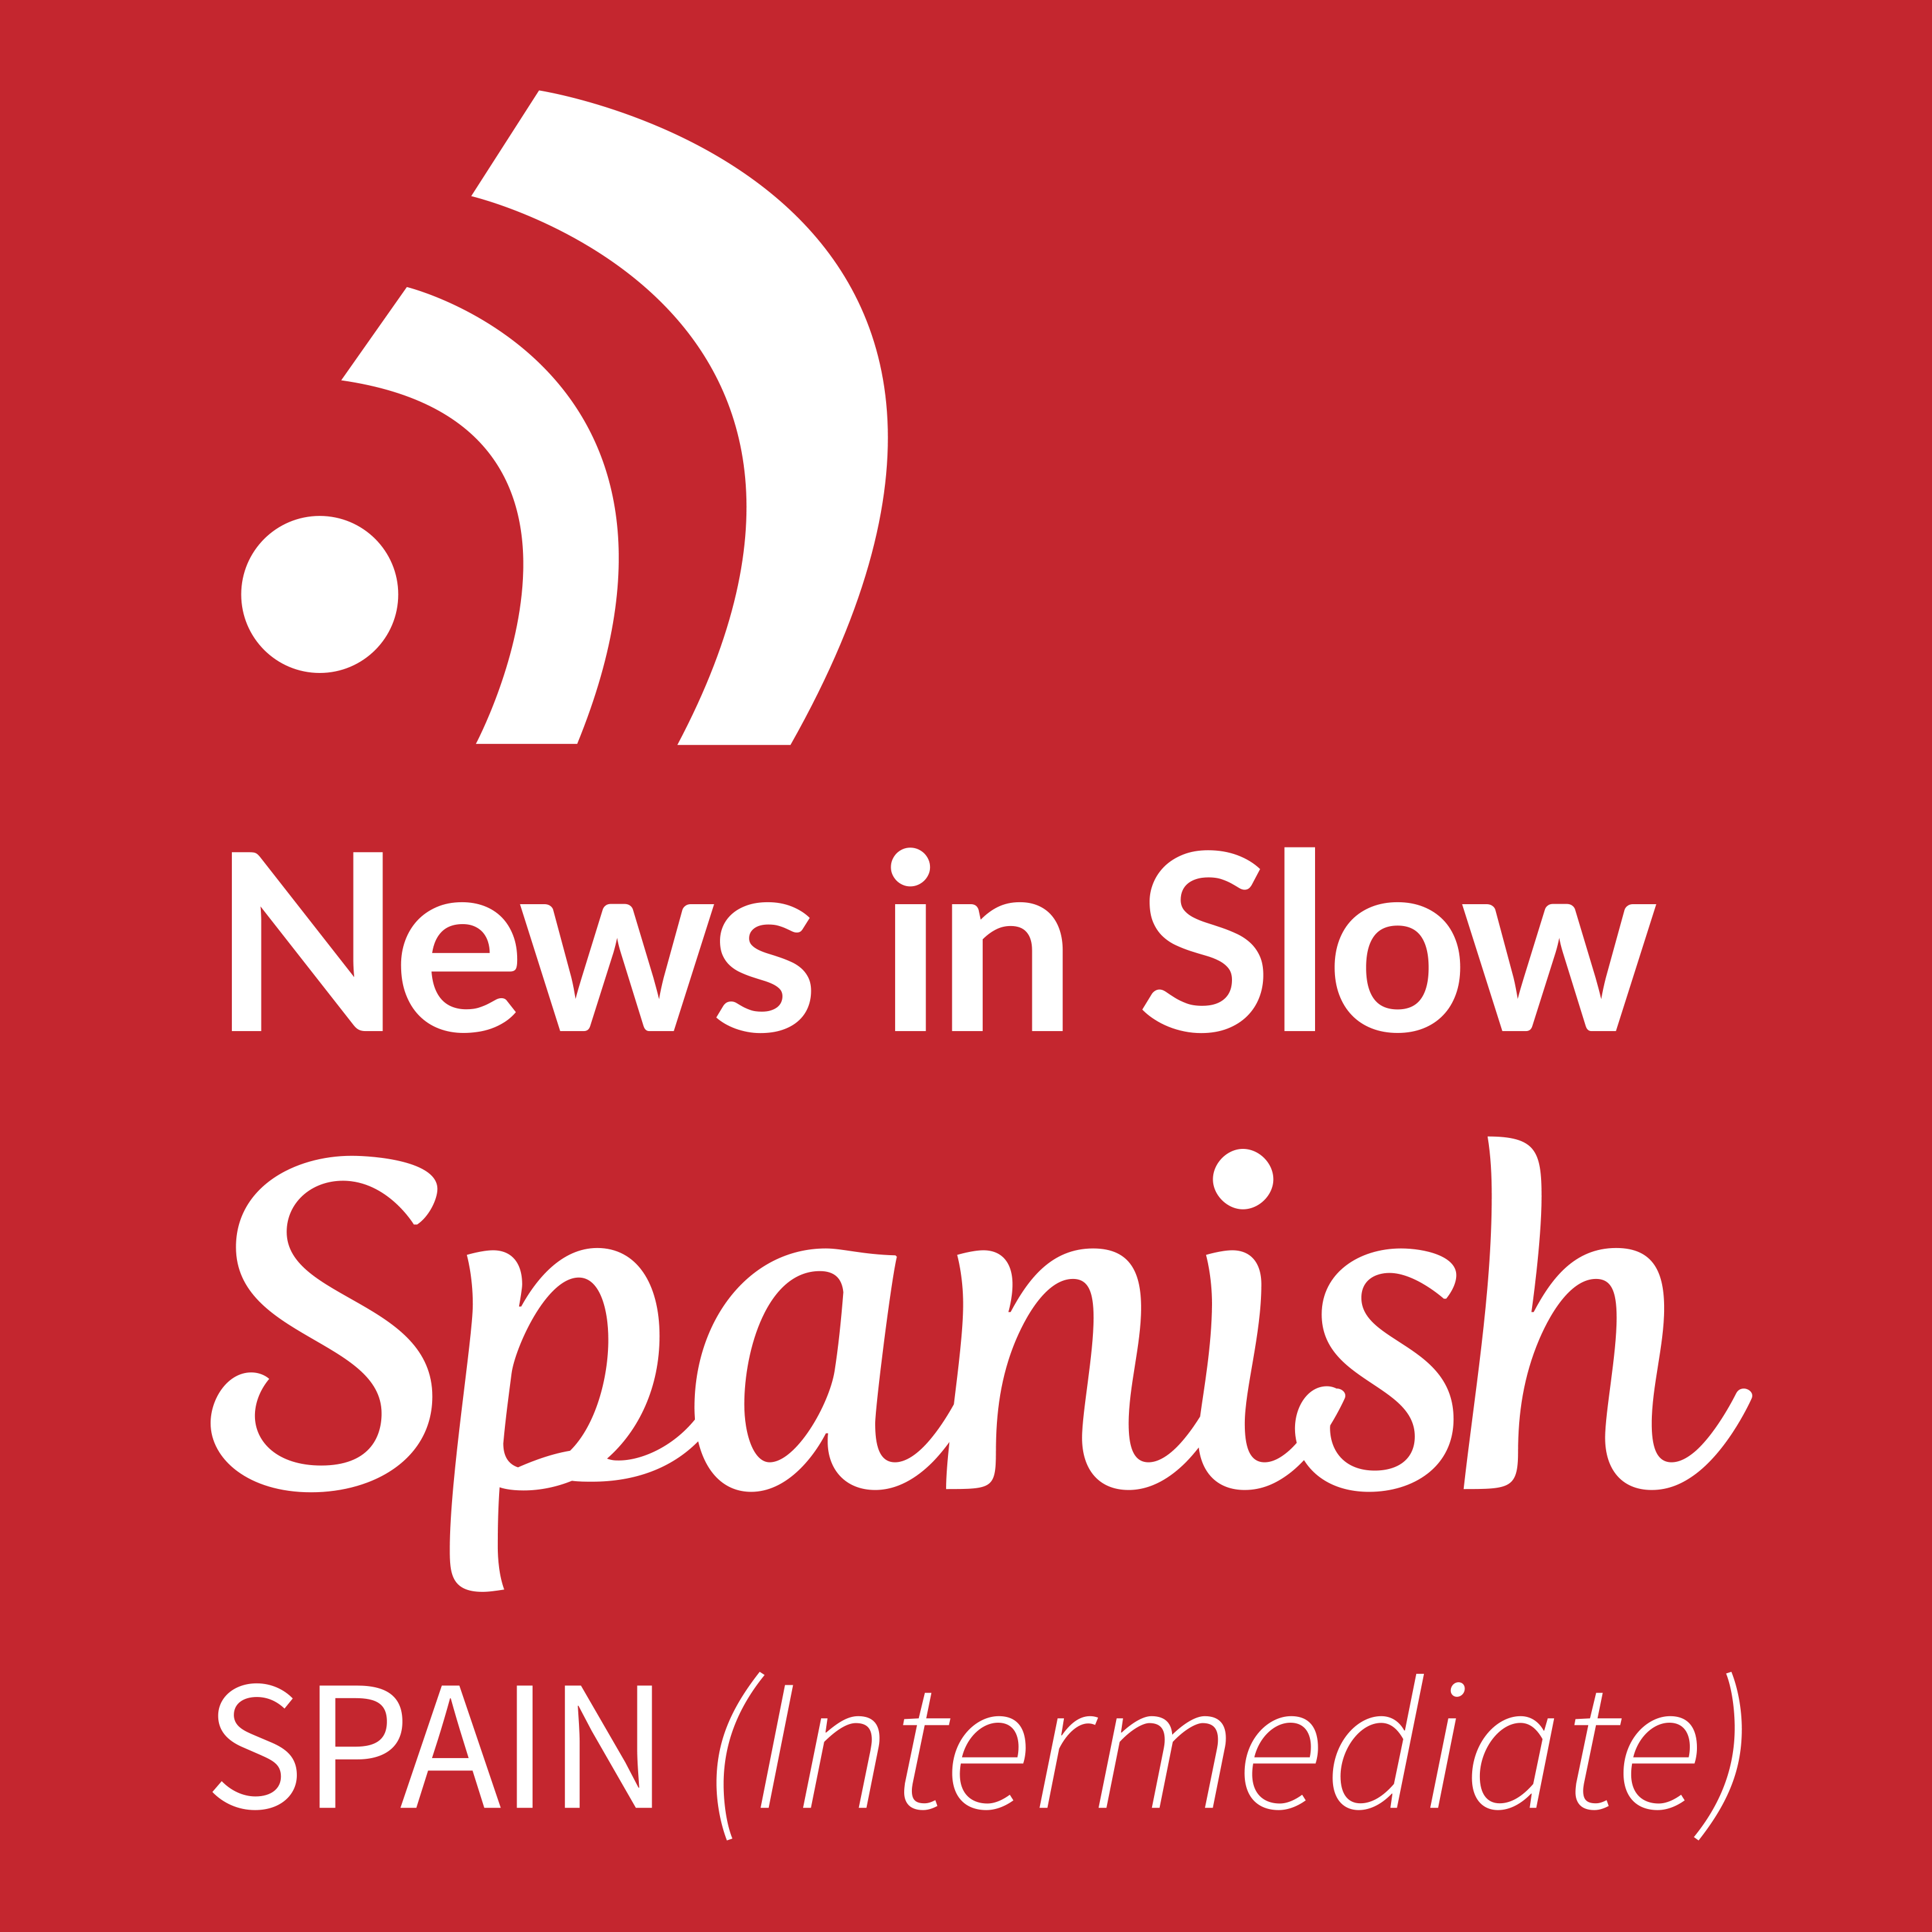 News in Slow Spanish - #393 - Learn Spanish through current events